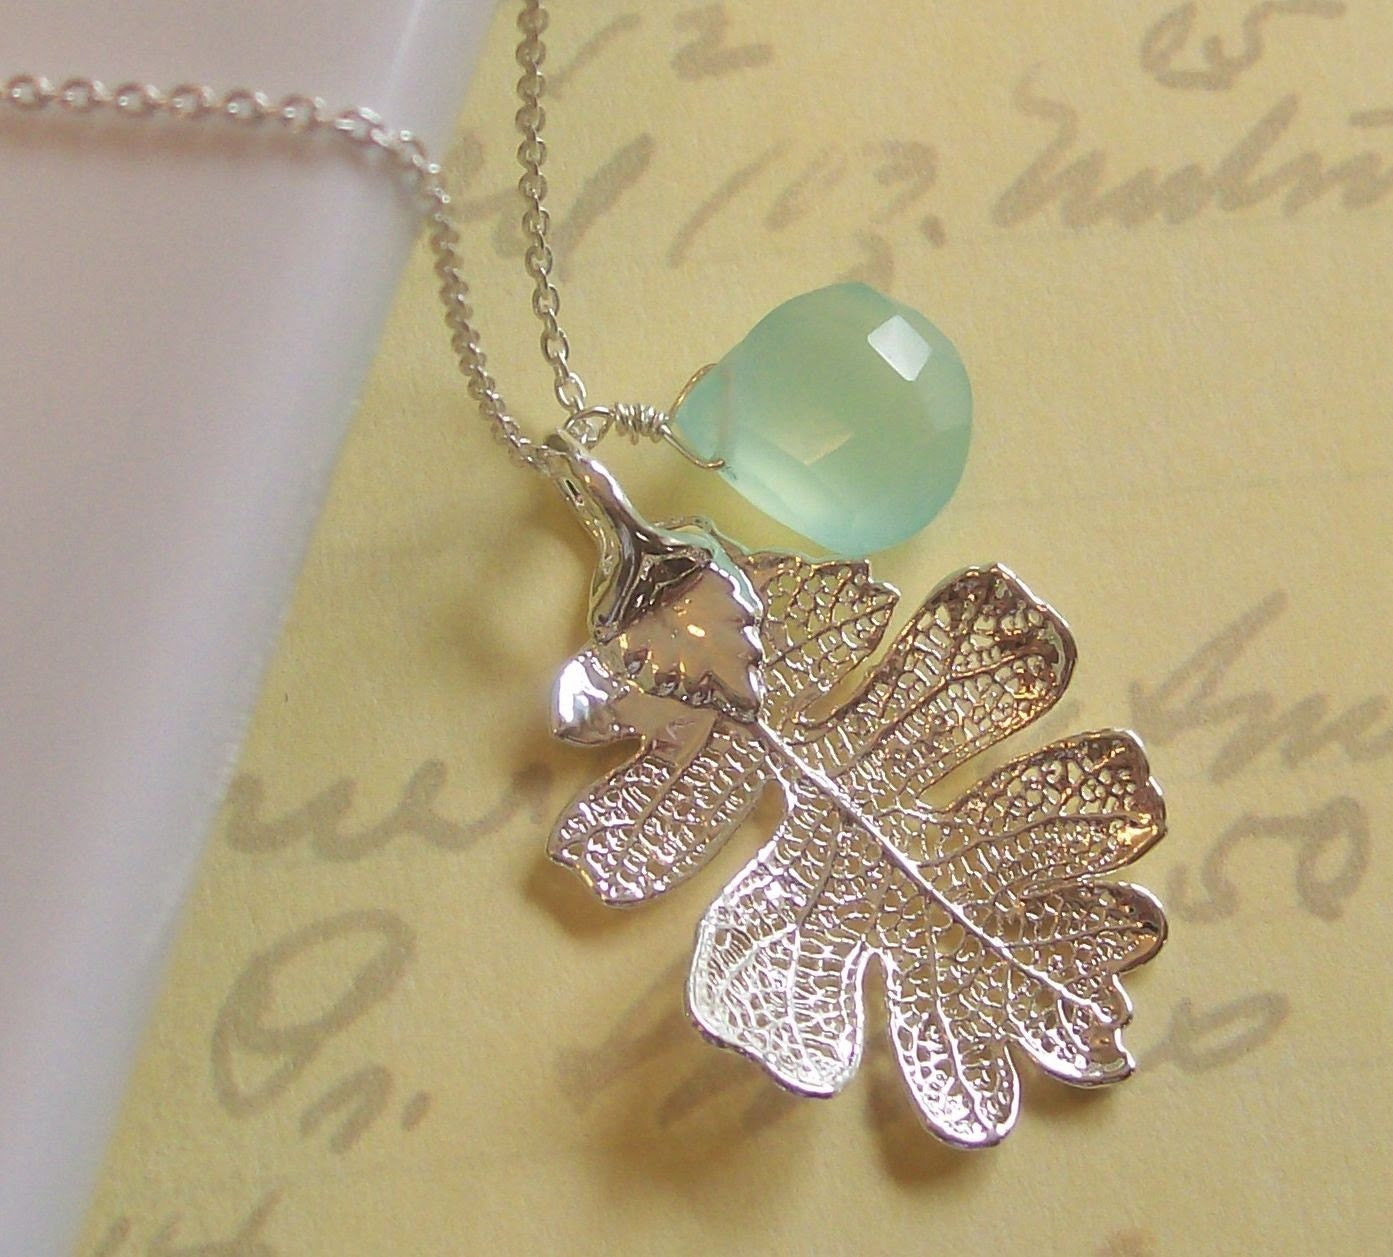 Spring Showers Necklace, Baby Oak Leaf and Seafoam Green Chalcedony Briolette